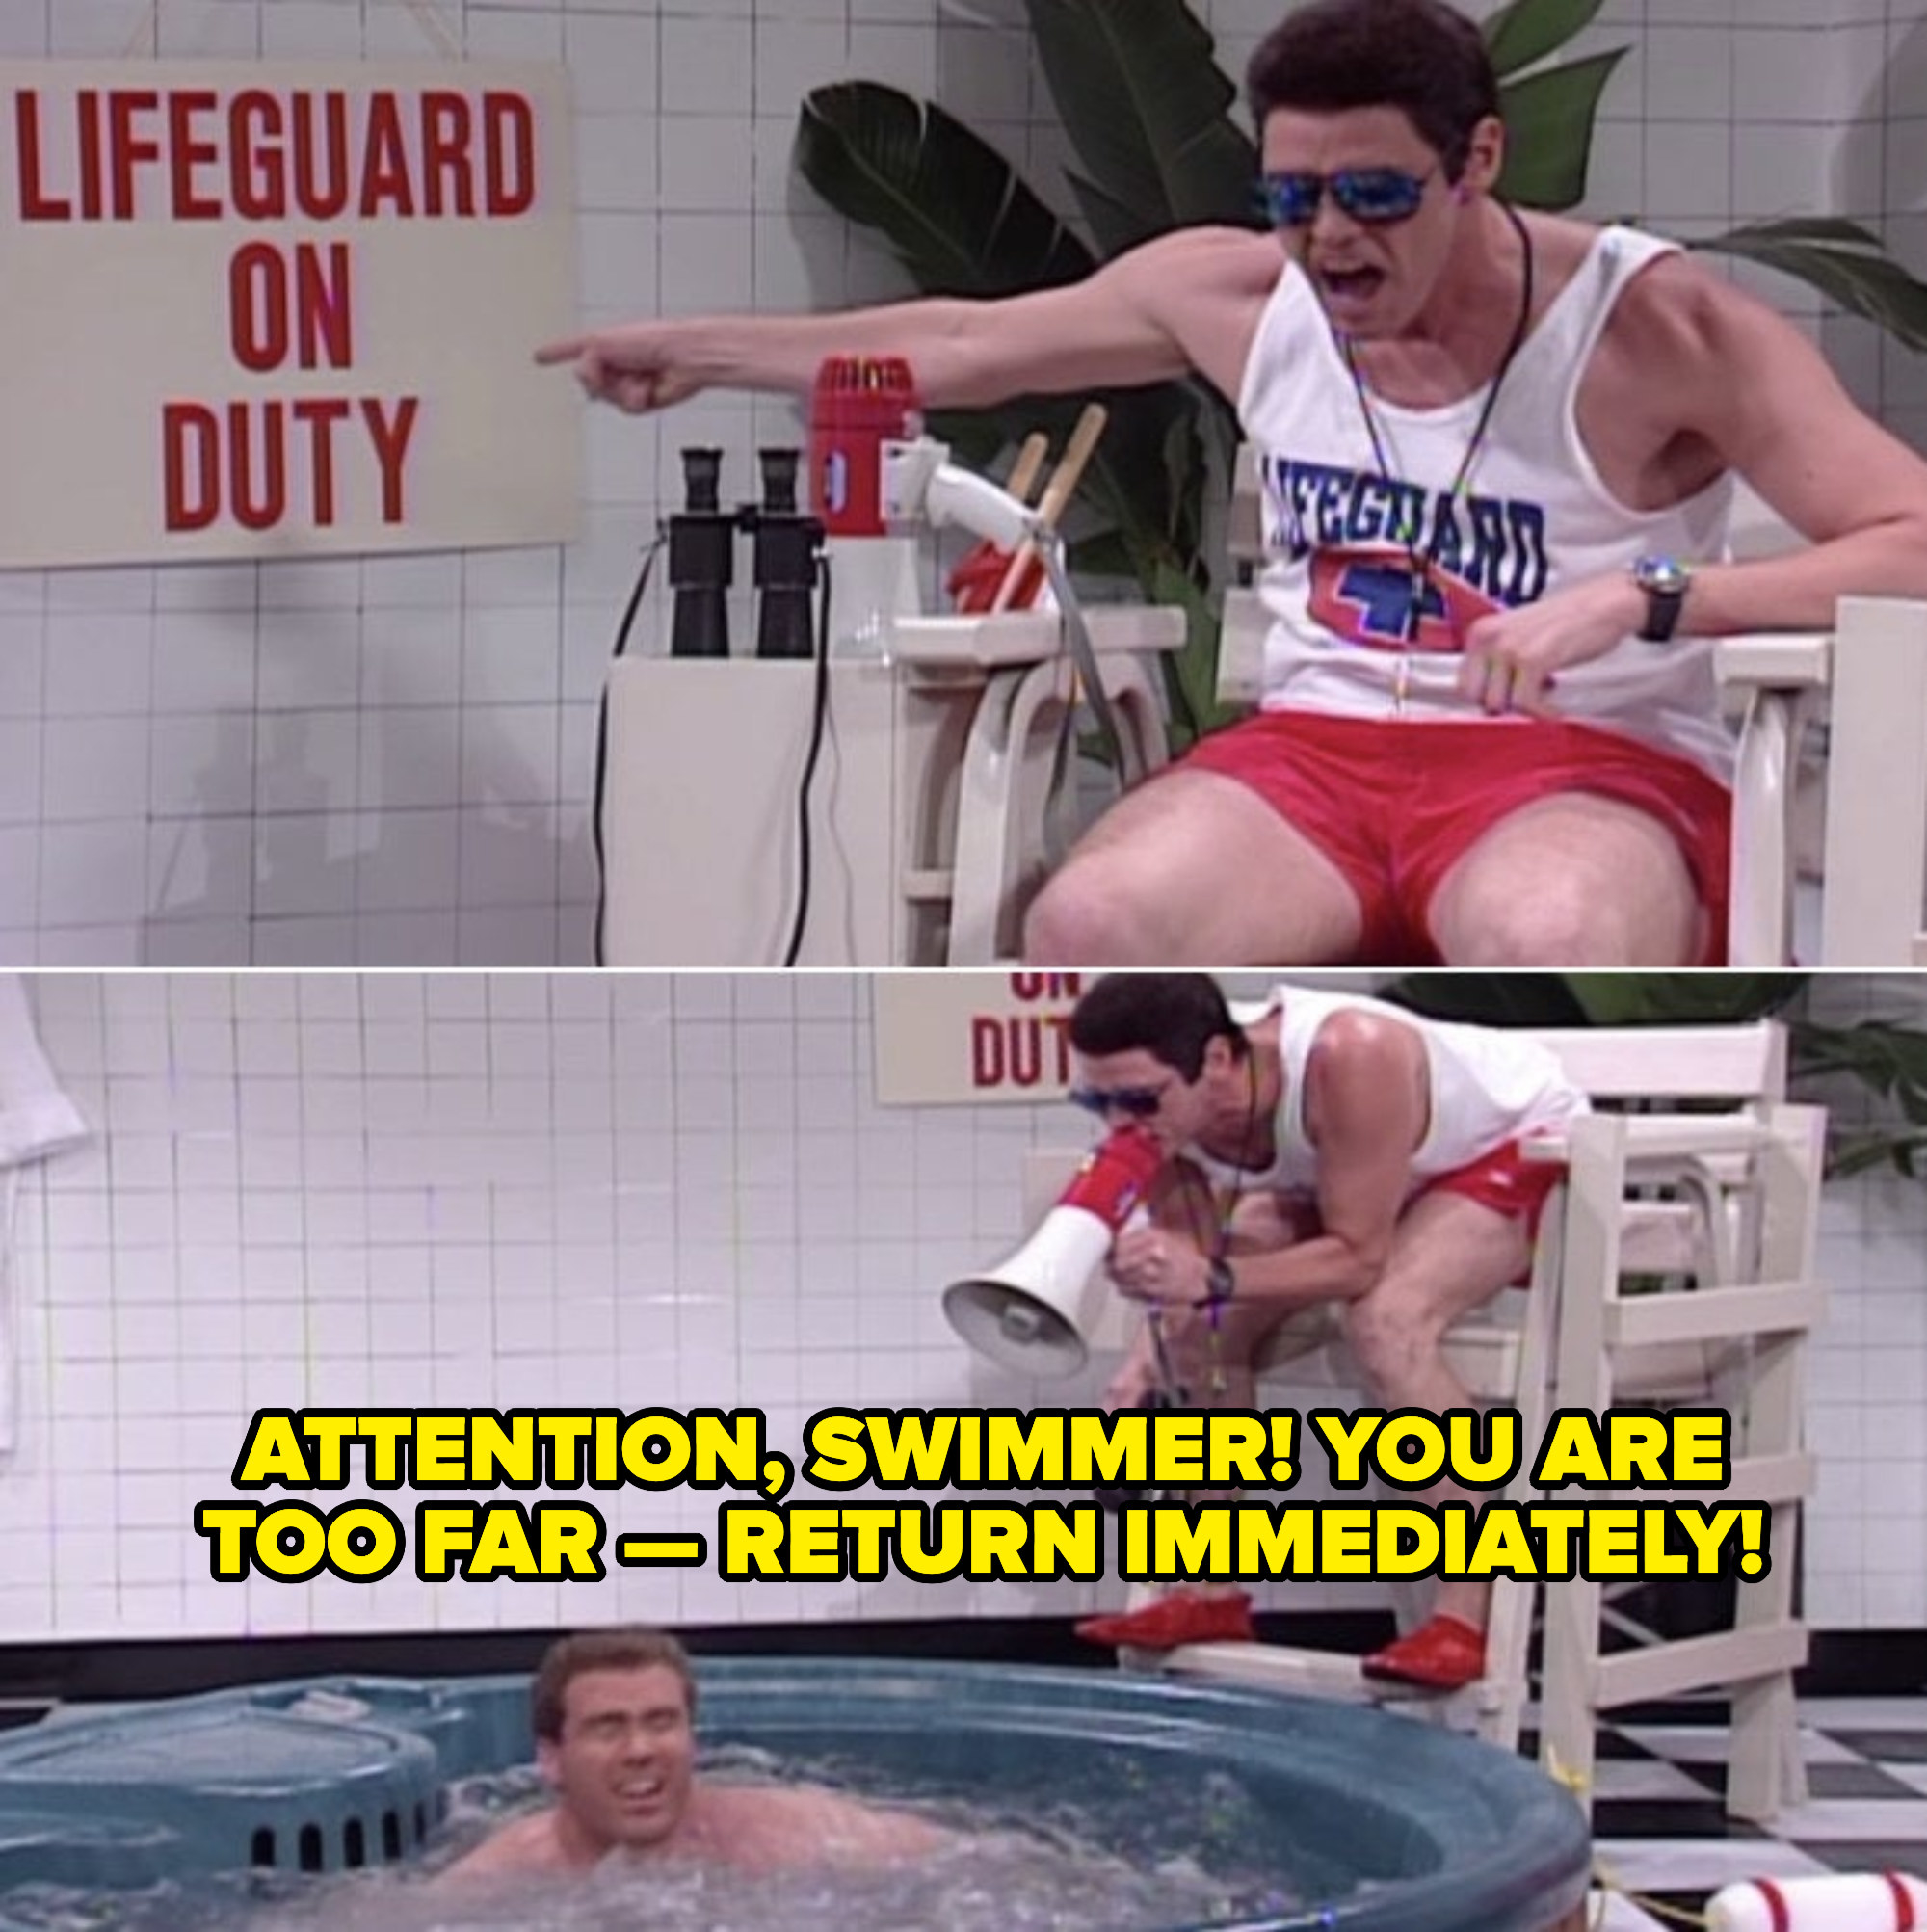 Jim Carrey acting as a lifeguard for a mini hot tub, sitting in a lifeguard chair, yelling at Will Ferrell with a megaphone